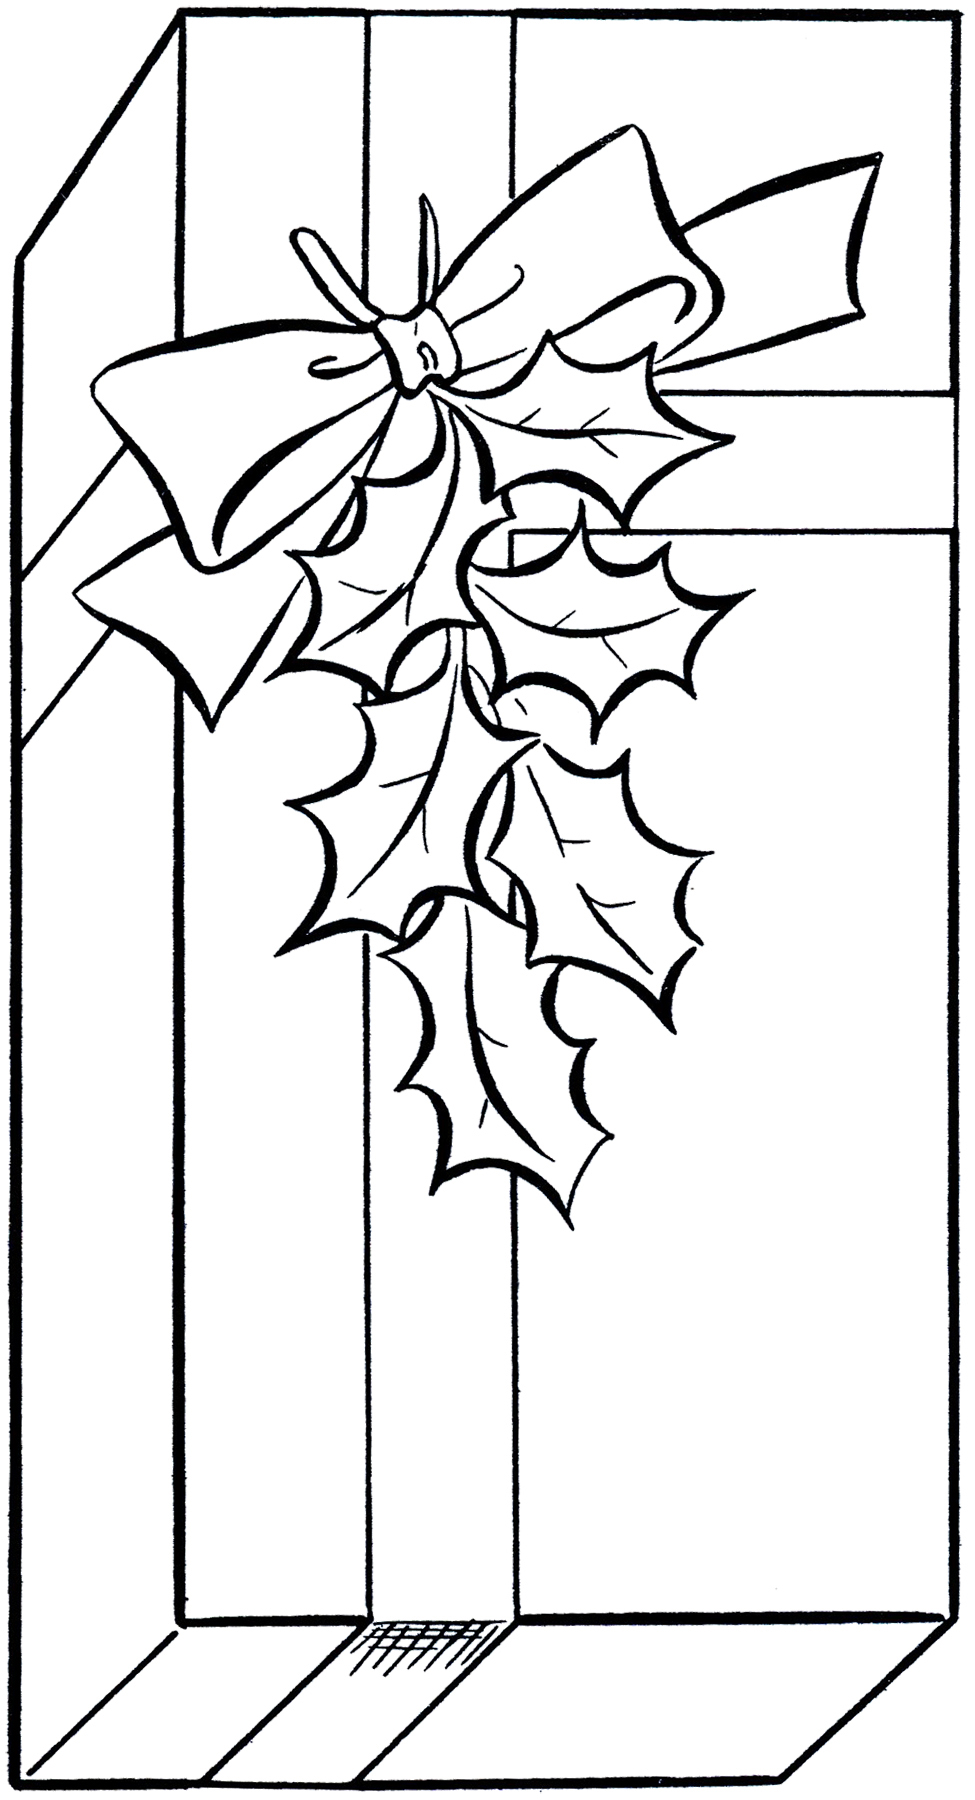 Holiday Gift Clip Art Image Coloring Page The